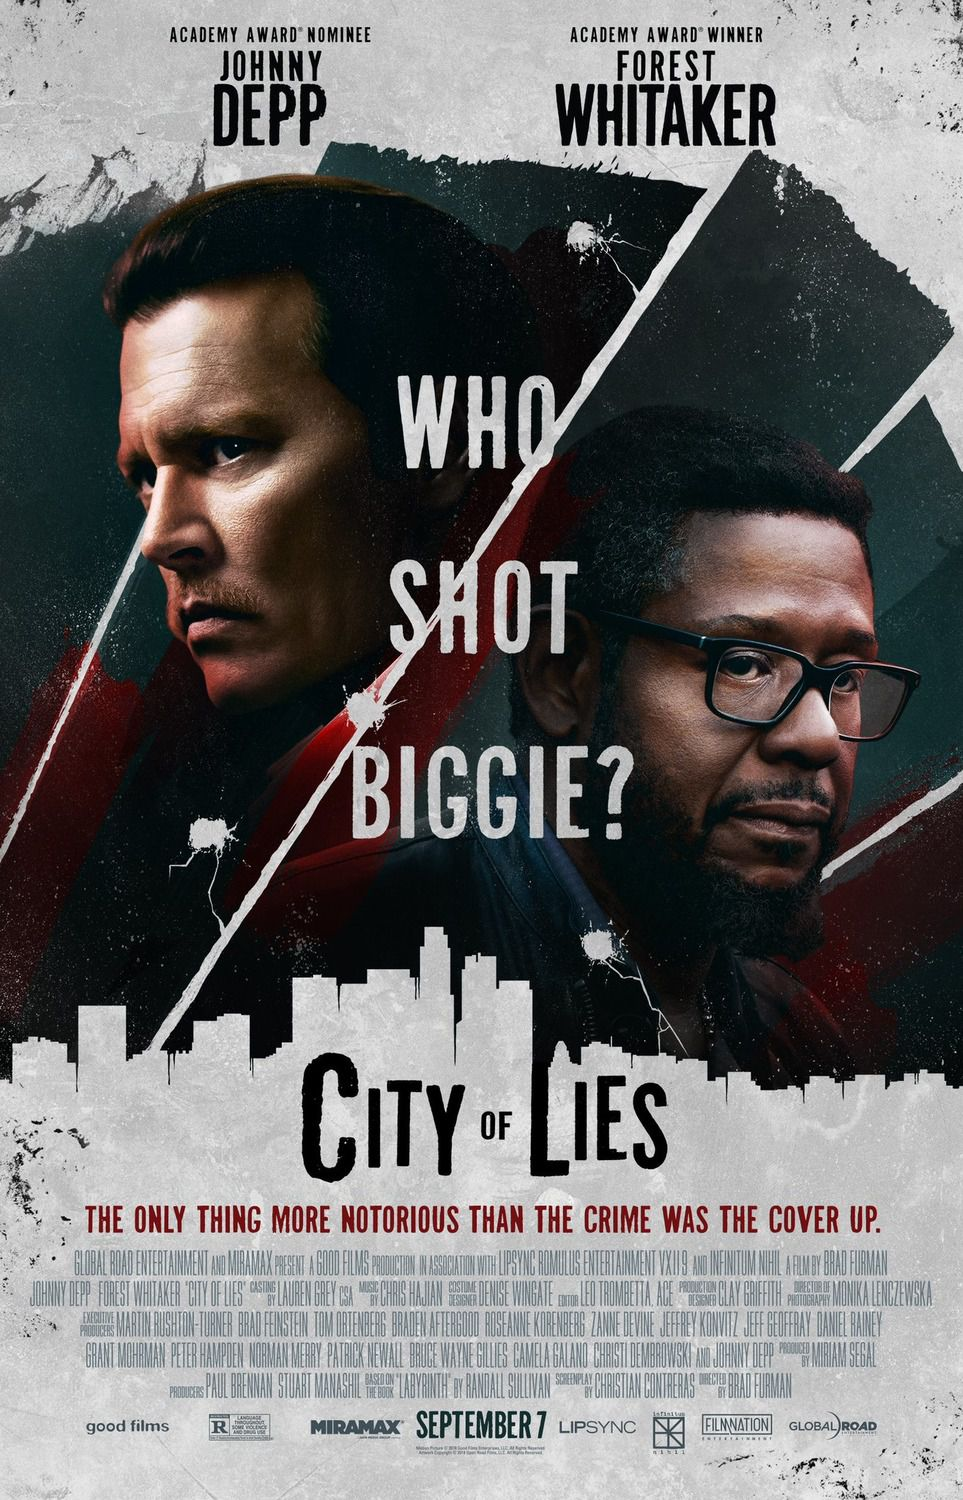 City of Lies - who shot biggie - Cast: Johnny Depp, Forest Whitaker, Toby Huss, Dayton Callie - film poster